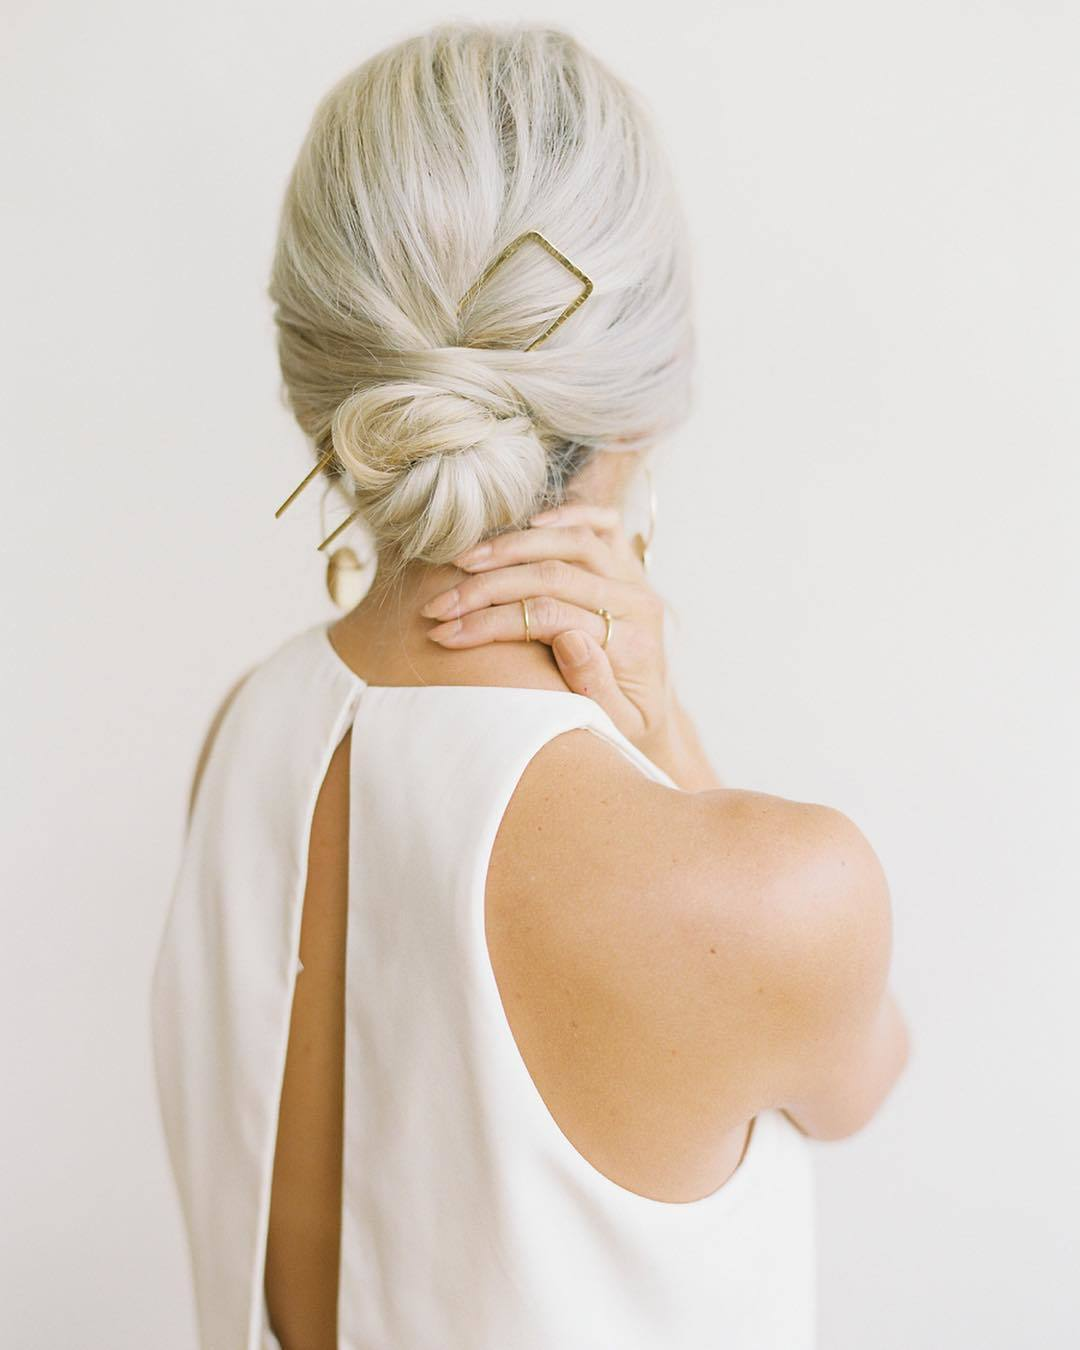 Wedding hairstyles: Woman with platinum hair styled into a sleek low bun, wearing a clip